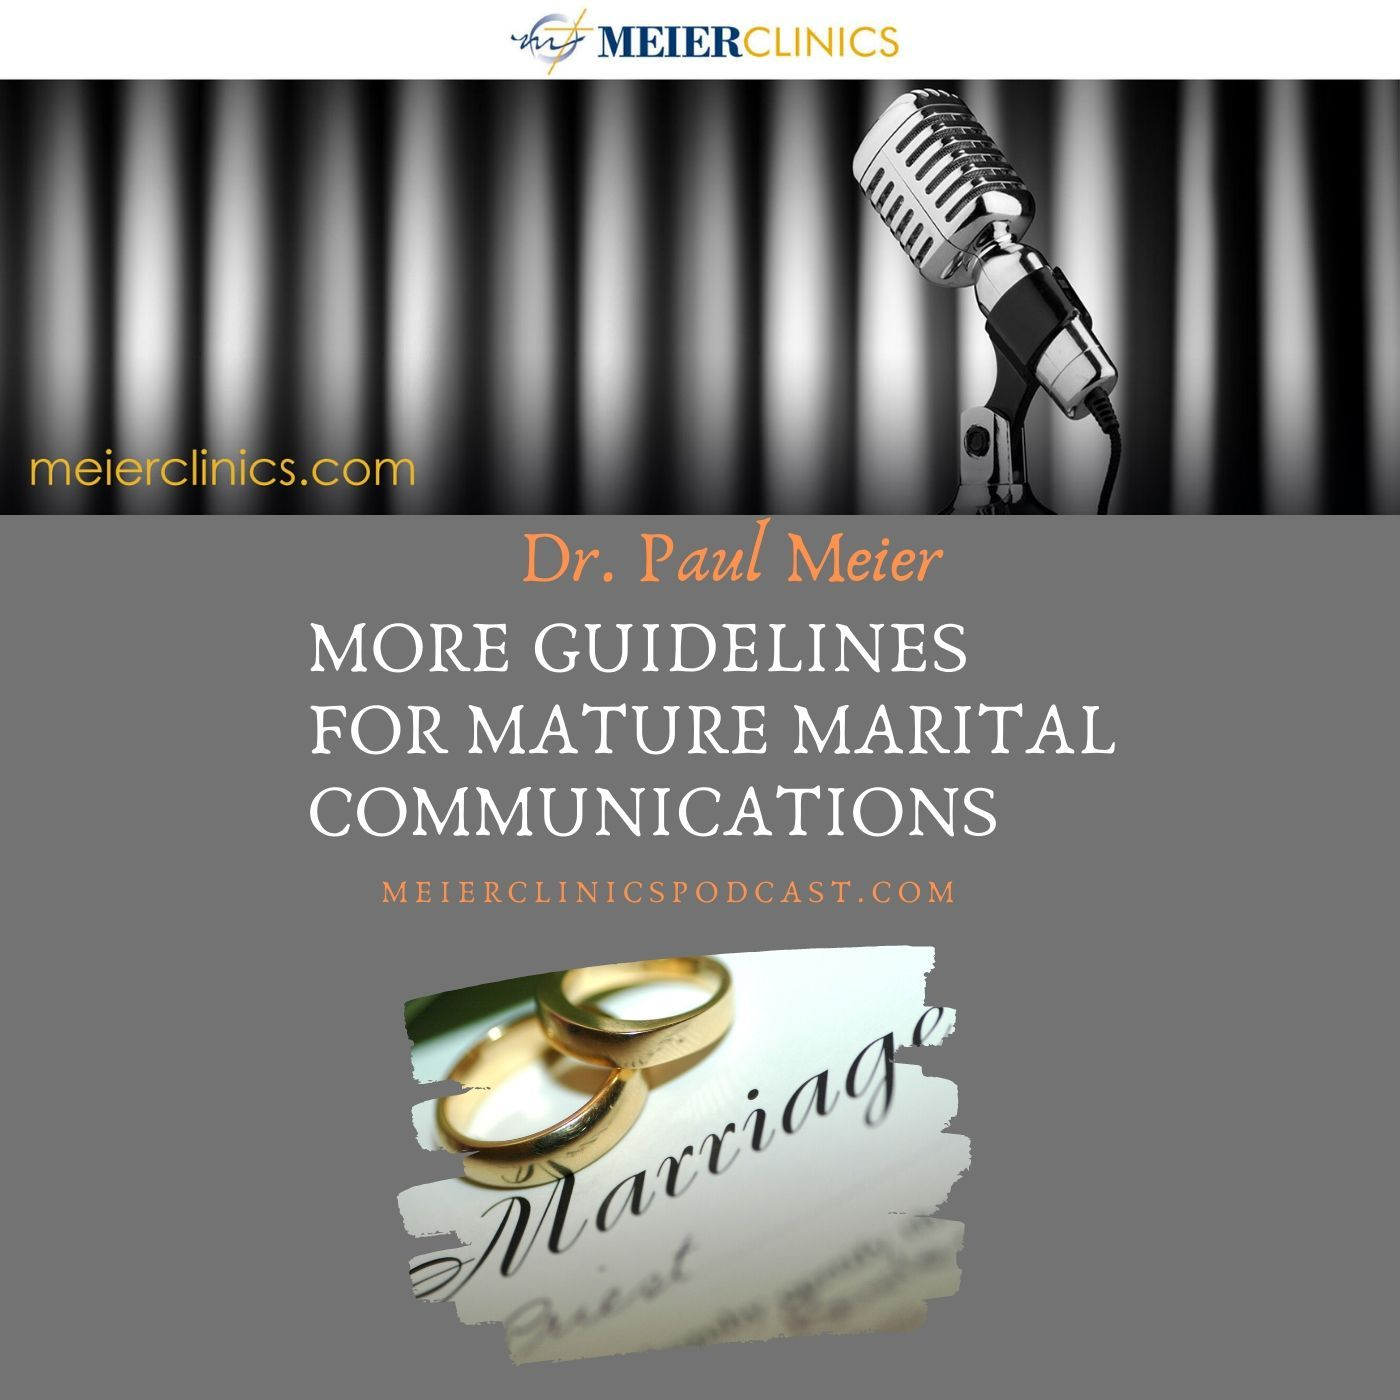 More Guidelines for Mature Marital Communications with Dr. Paul Meier